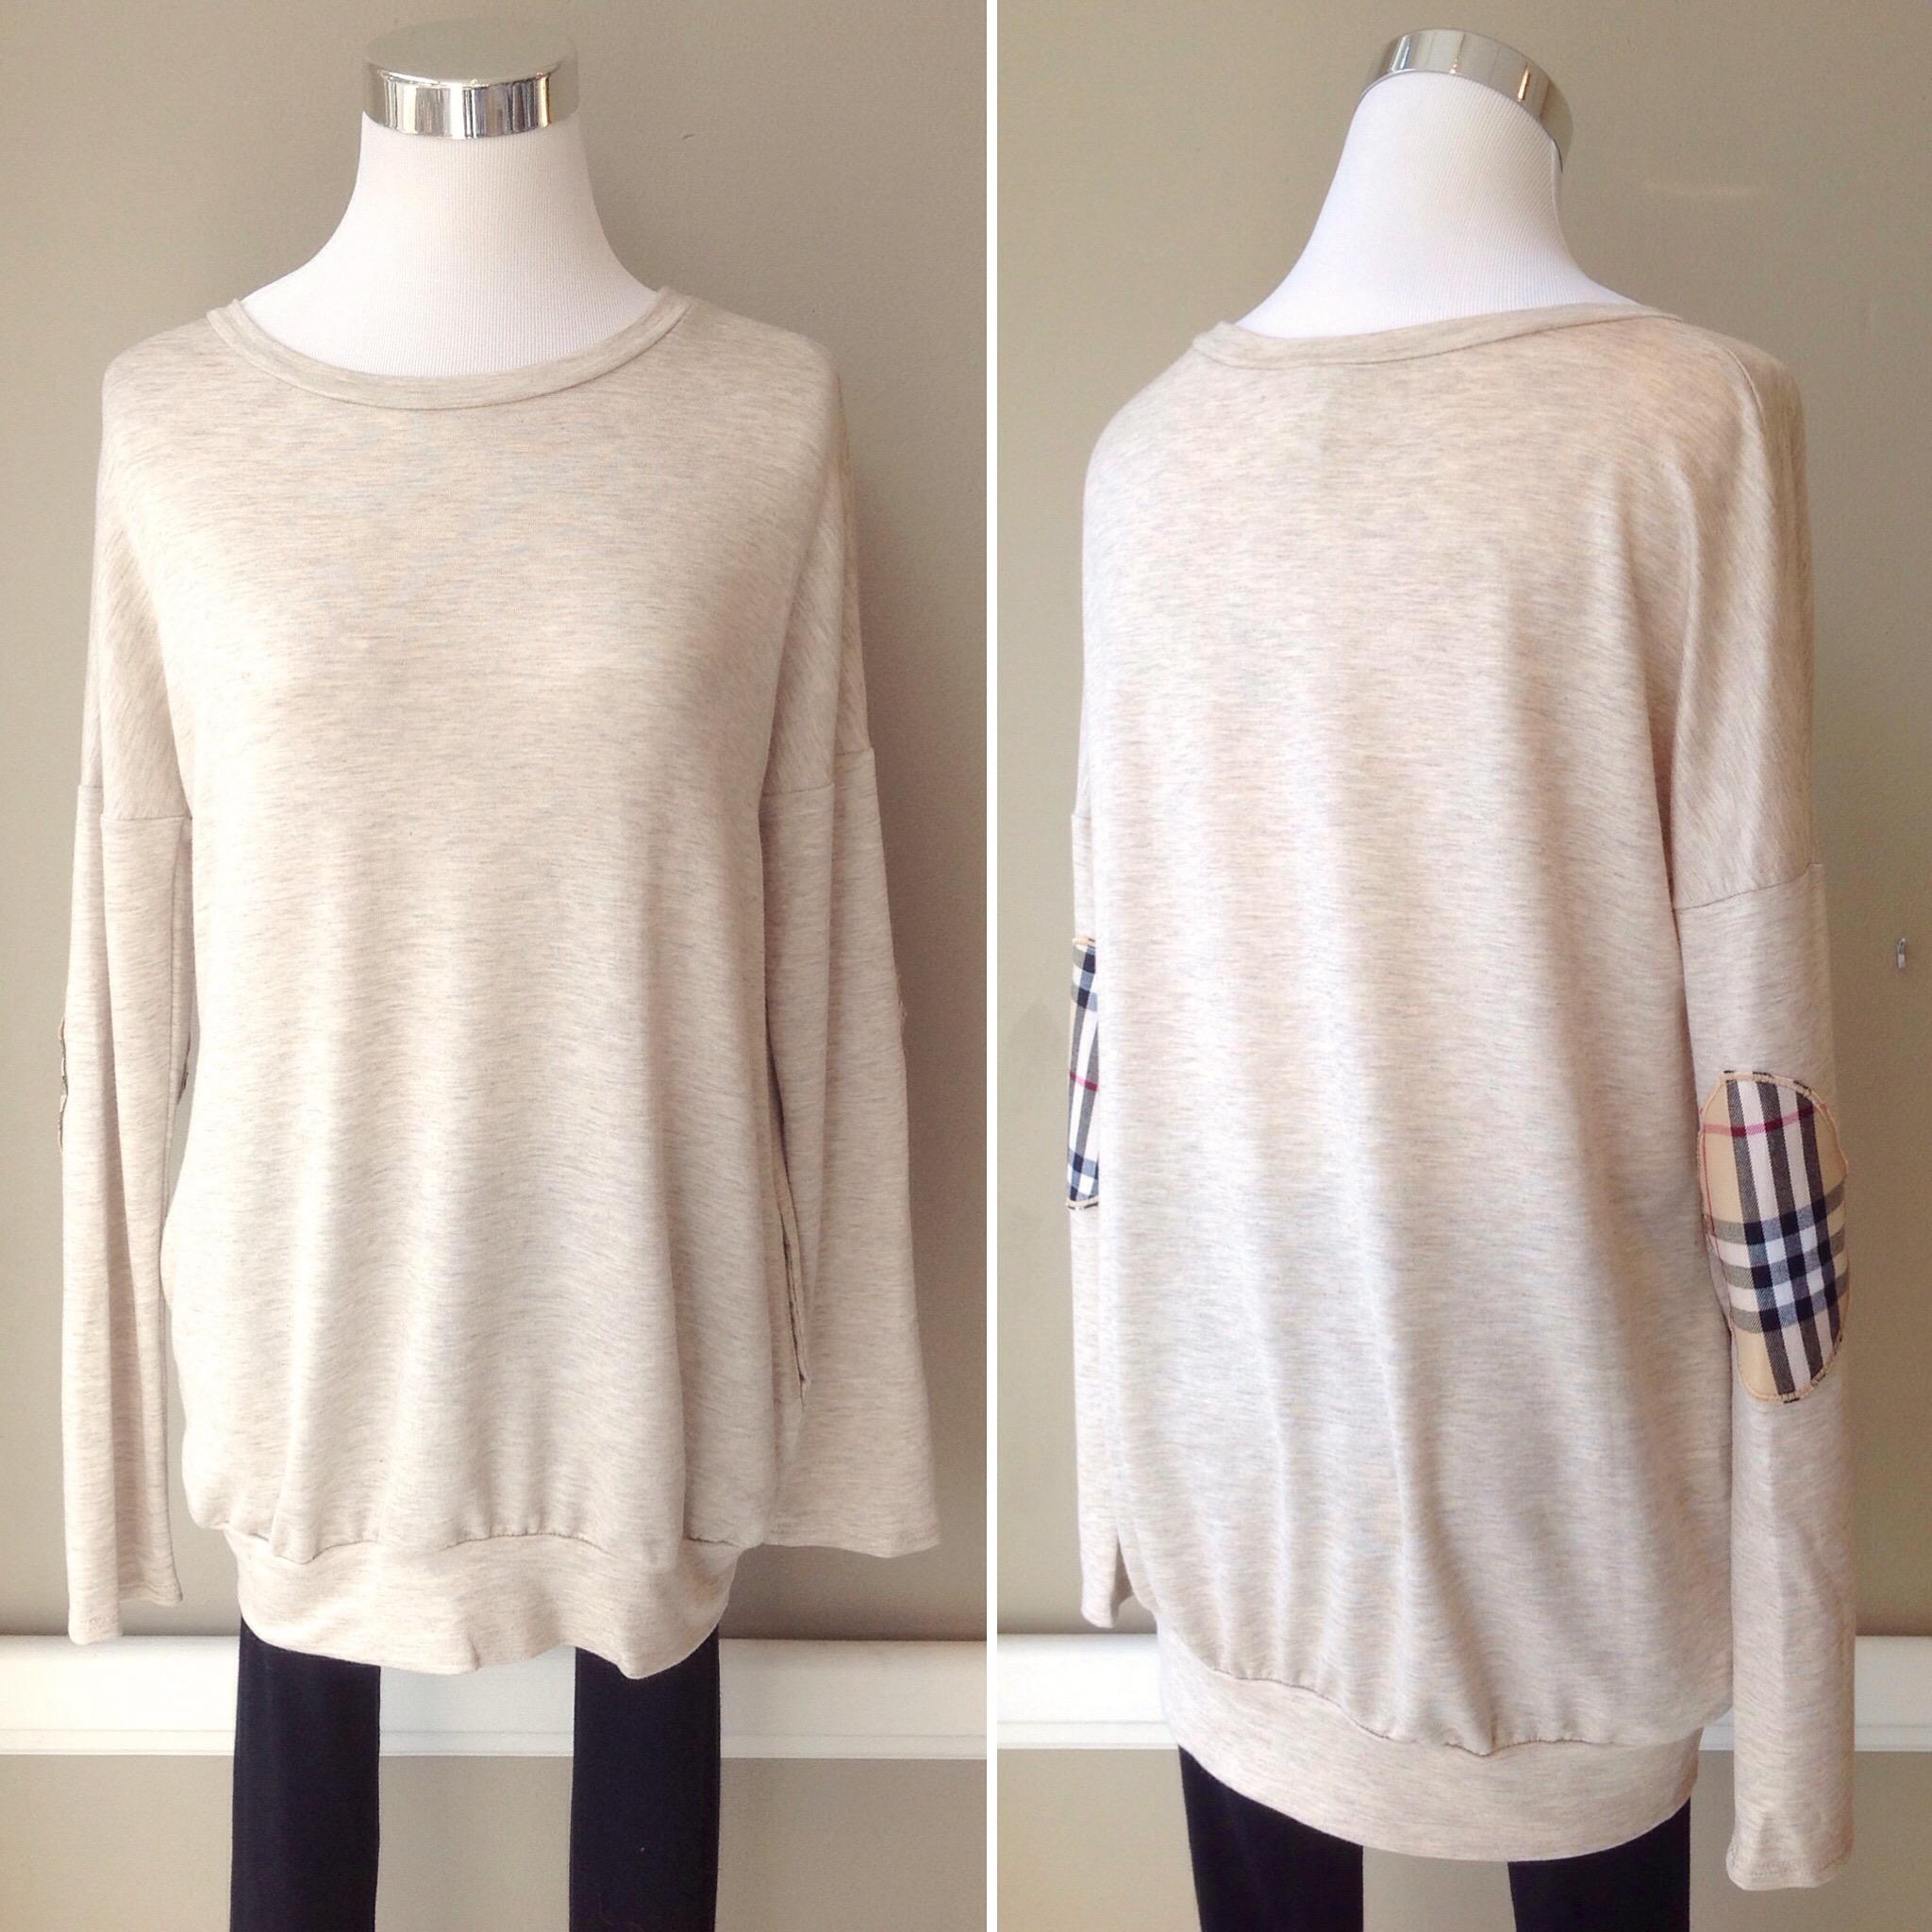 French terry tunic sweatshirt with plaid elbow patches and side seam pockets in oatmeal, $38